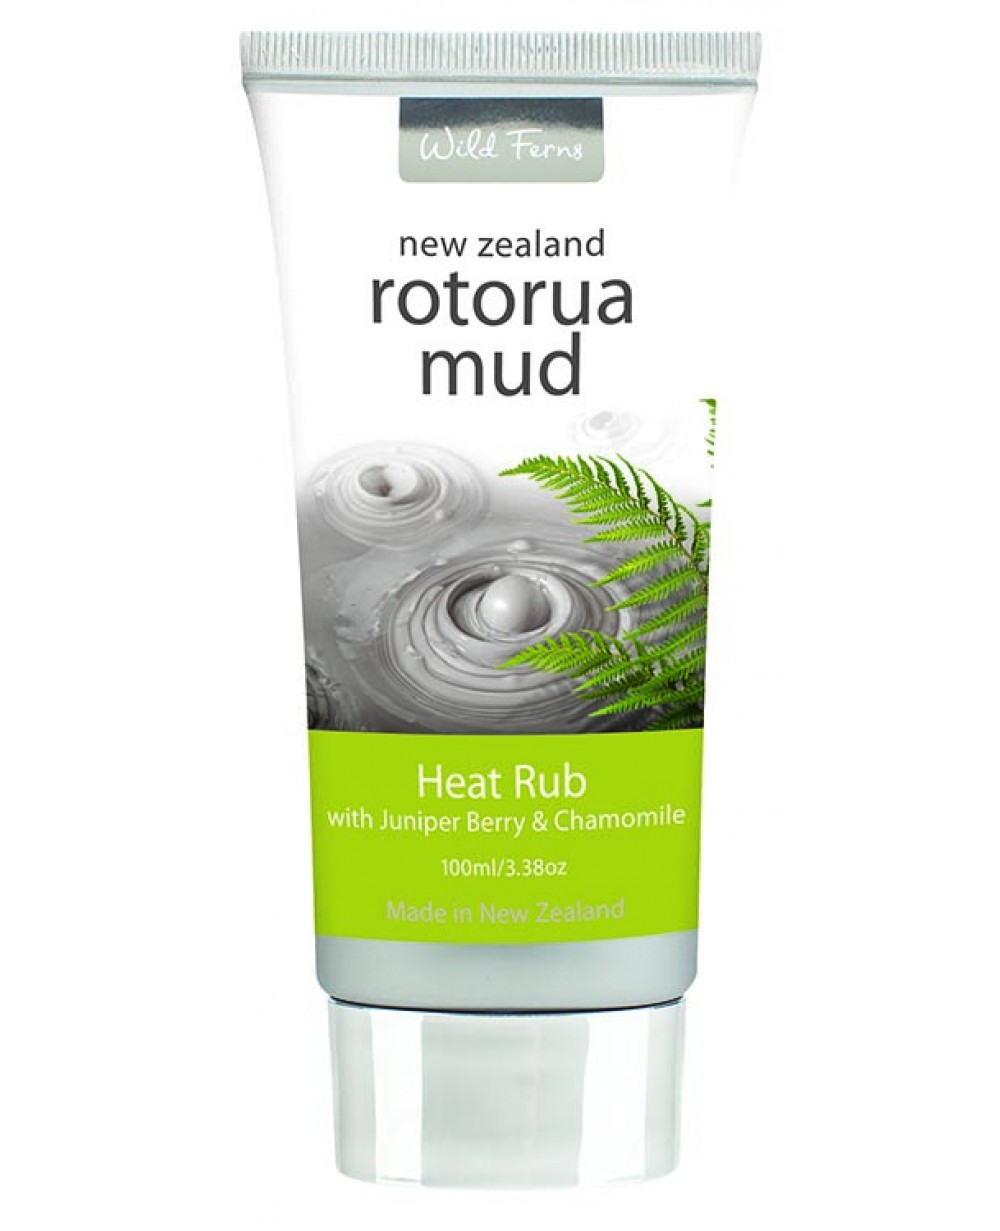 WILD FERNS ROTORUA MUD HEAT RUB & JUNIPER BERRY & CHAMOMILE 100M